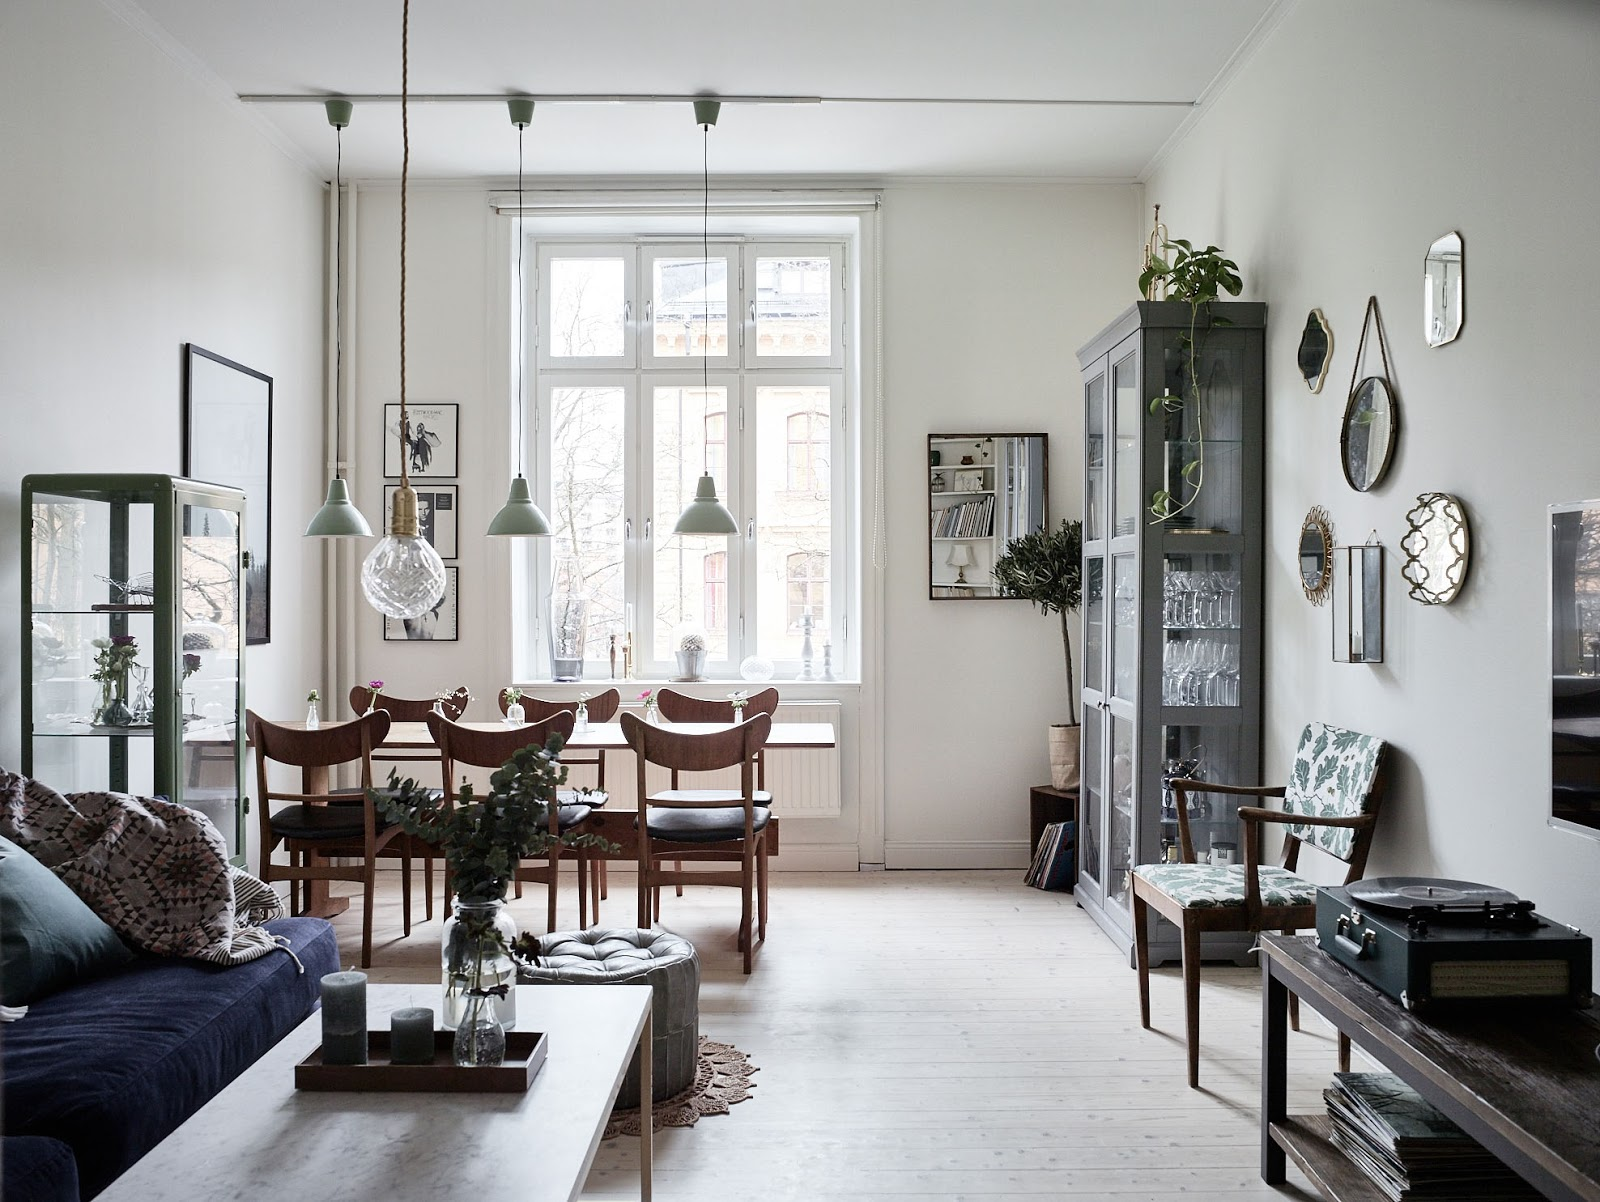 Where To Shop For Home Decor In Stockholm